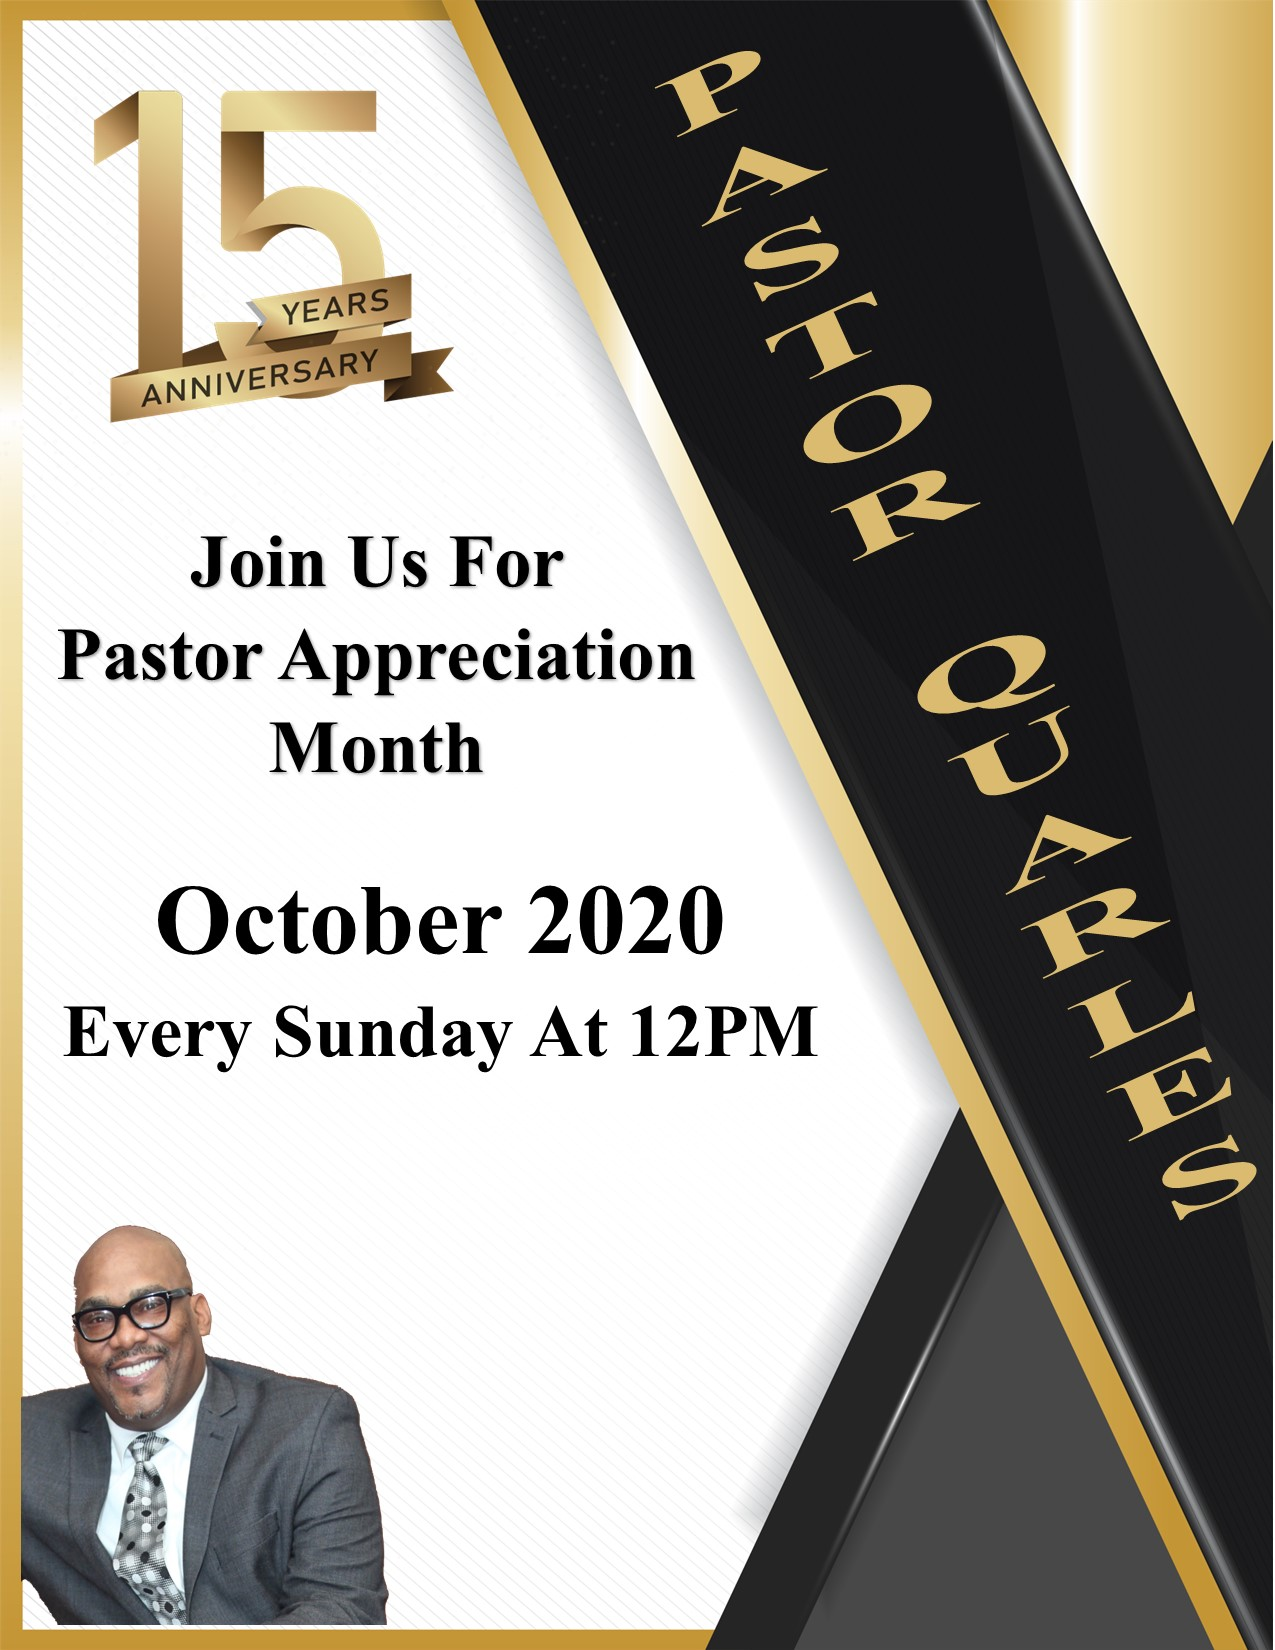 15th Pastoral Anniversary of Pastor Kevin Quarles